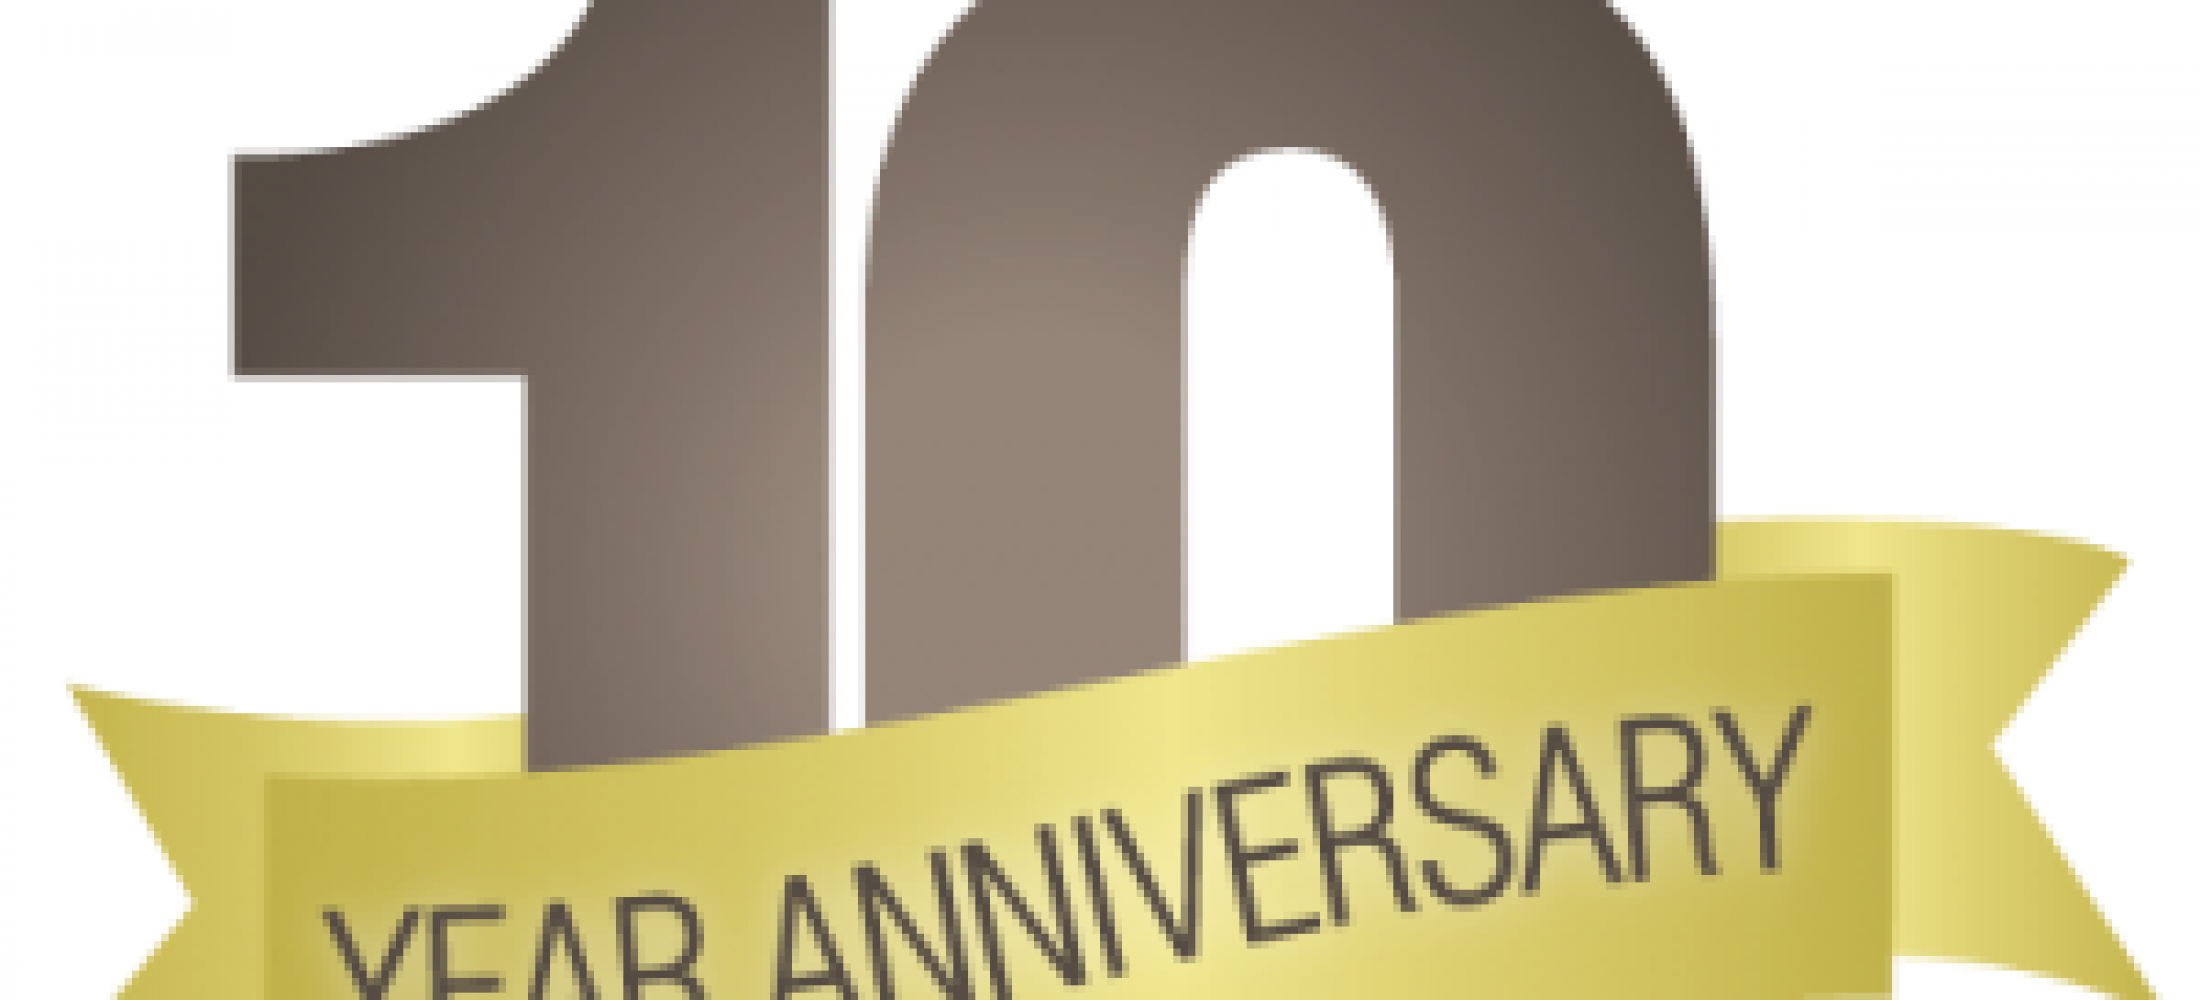 Thank You for Your Support as We Celebrate our 10 Years in Business